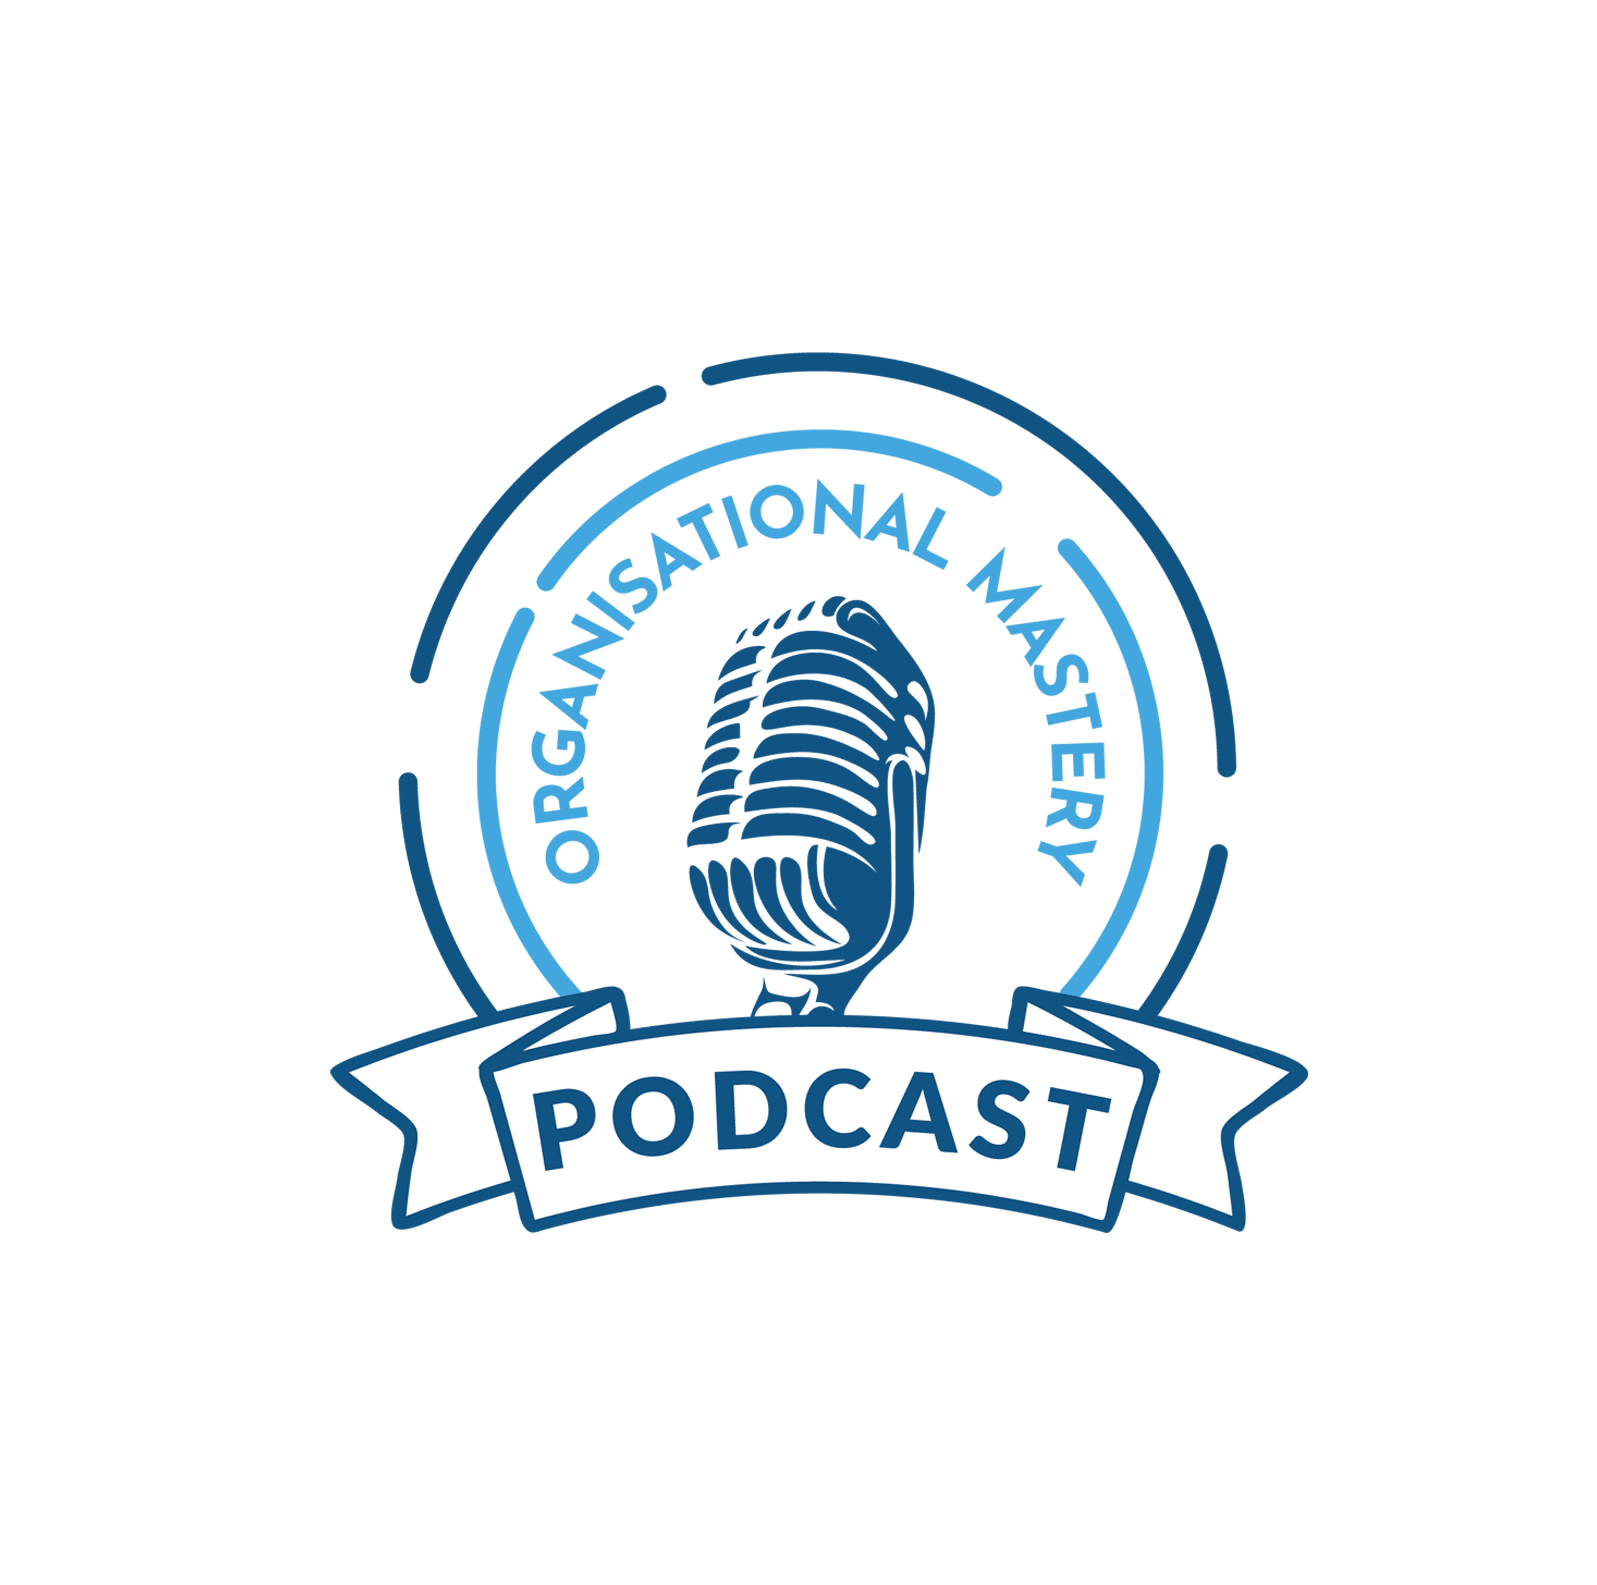 ORGANISATIONAL MASTERY PODCAST